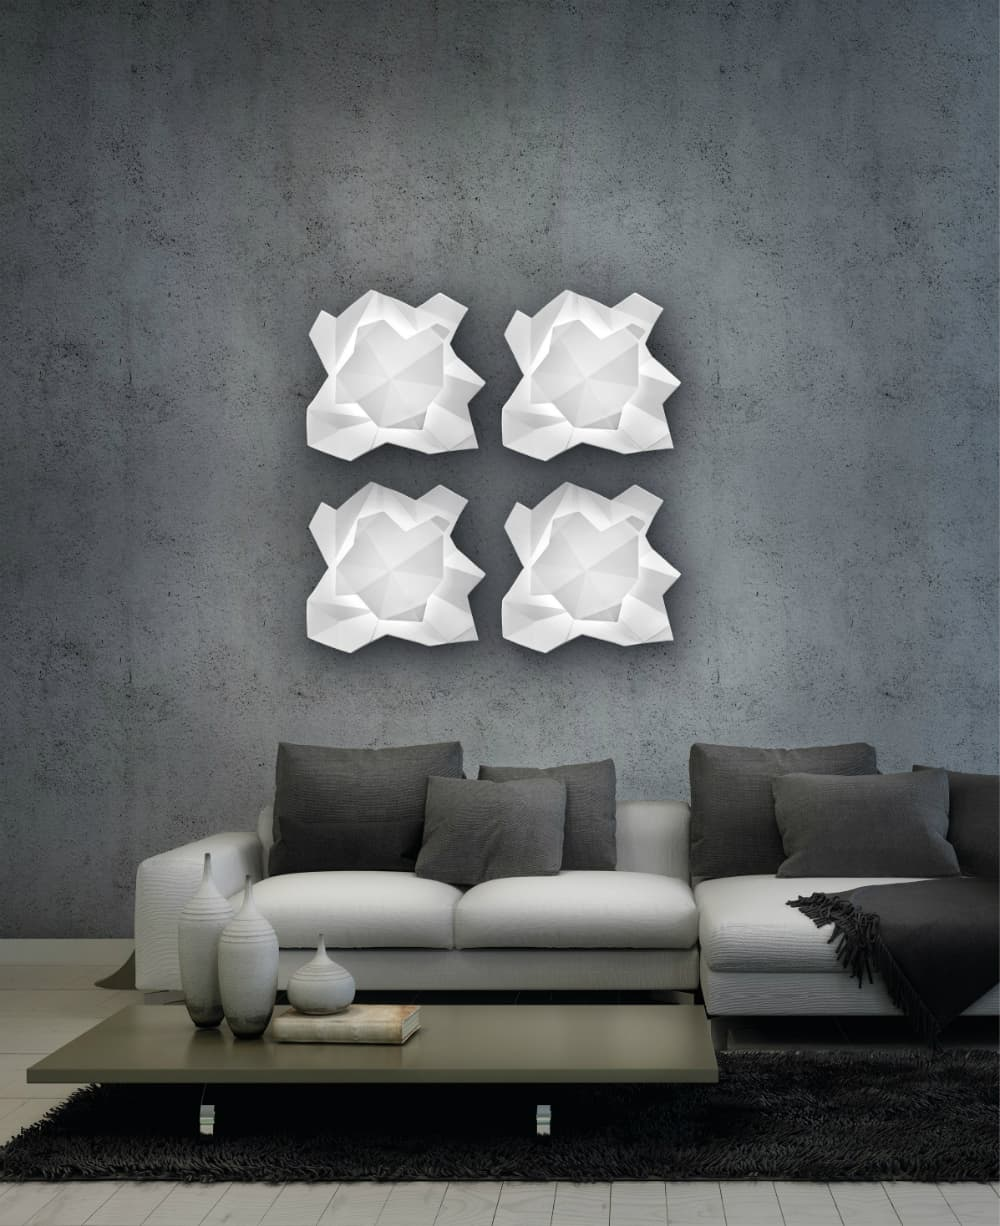 Sierra wall light by Metal Lux di Baccega R.&C.